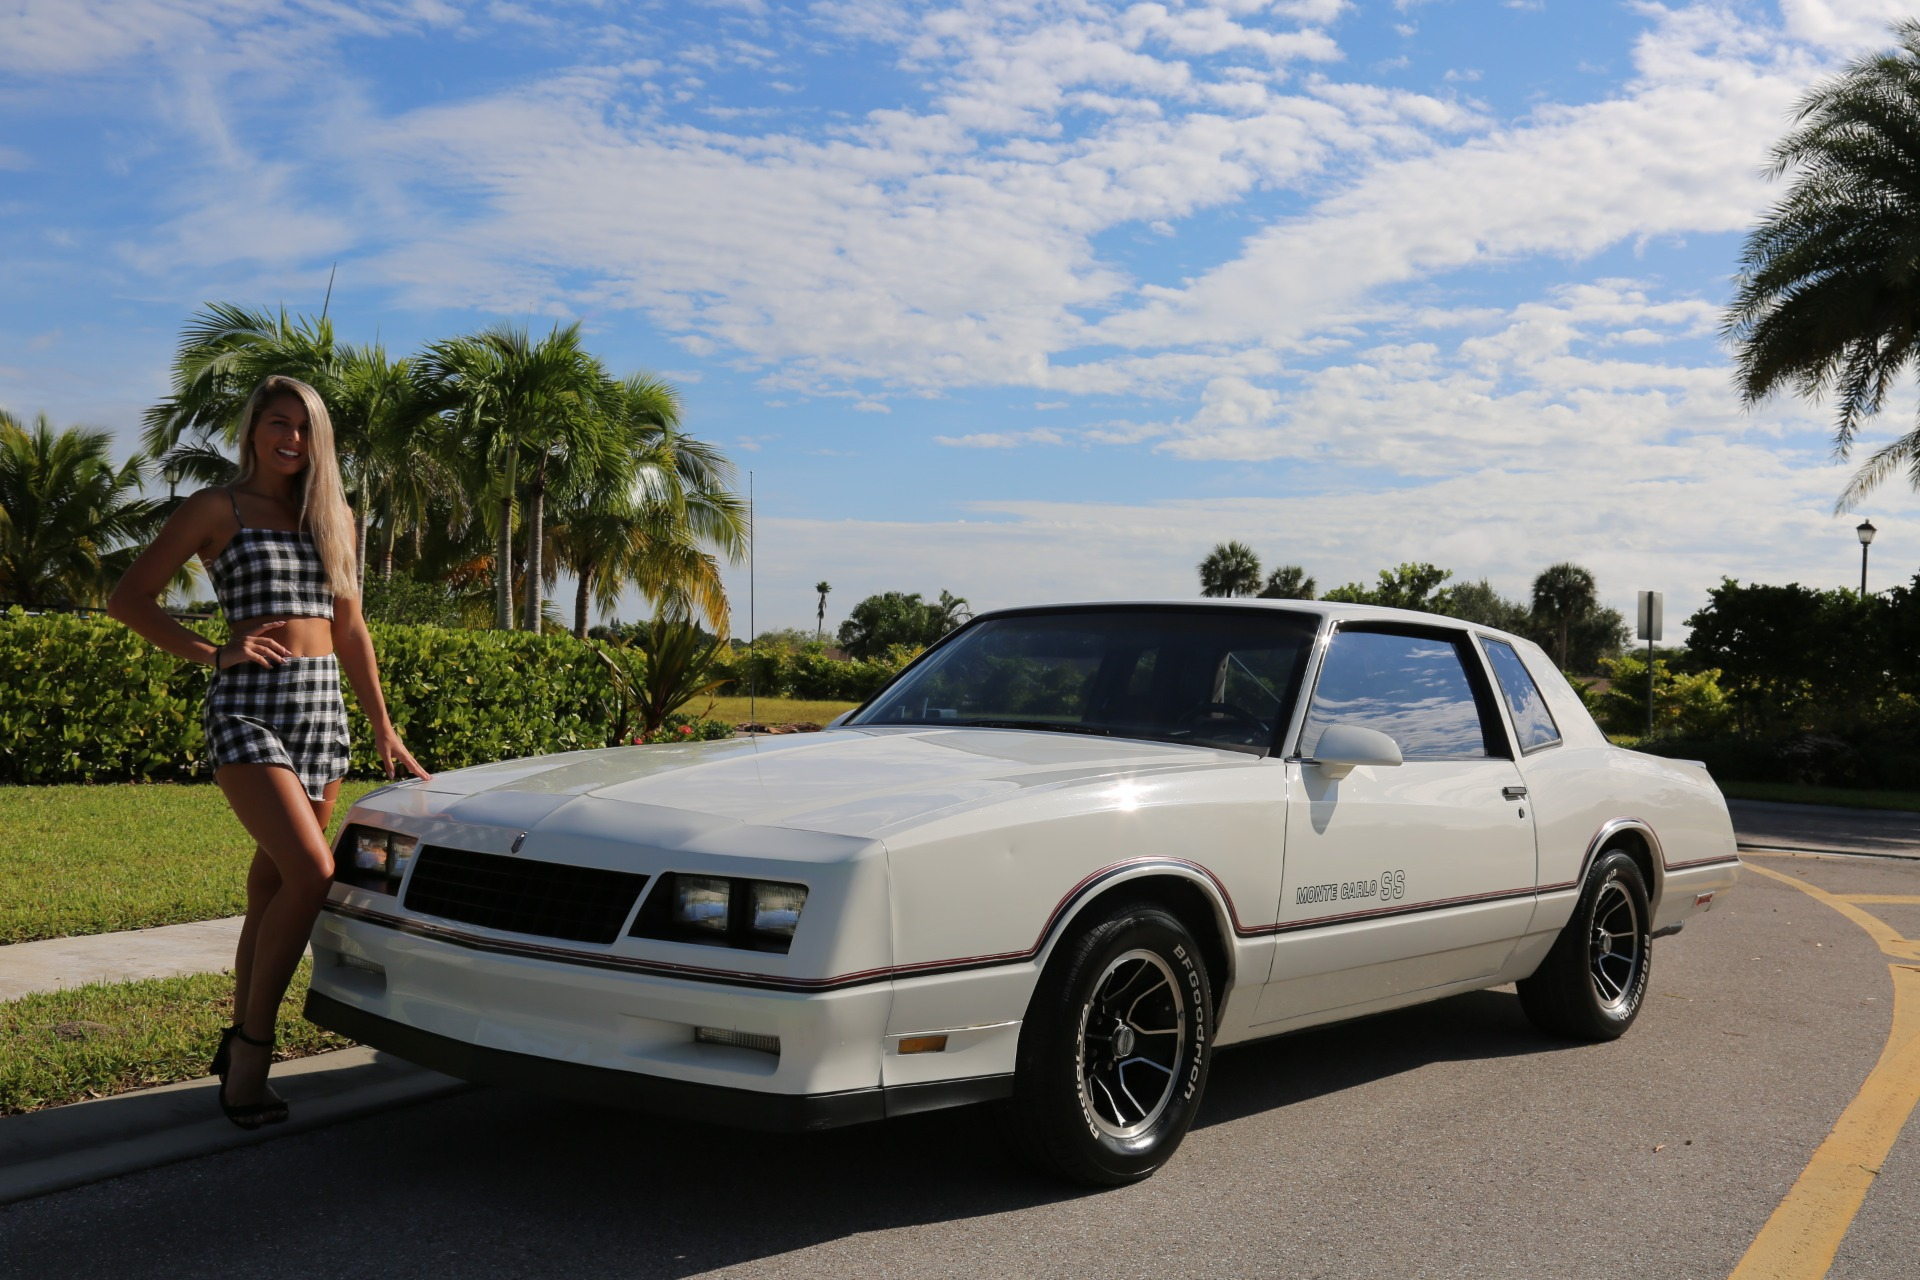 Used 1986 Chevrolet Monte Carlo SS Aero for sale $13,000 at Muscle Cars for Sale Inc. in Fort Myers FL 33912 6